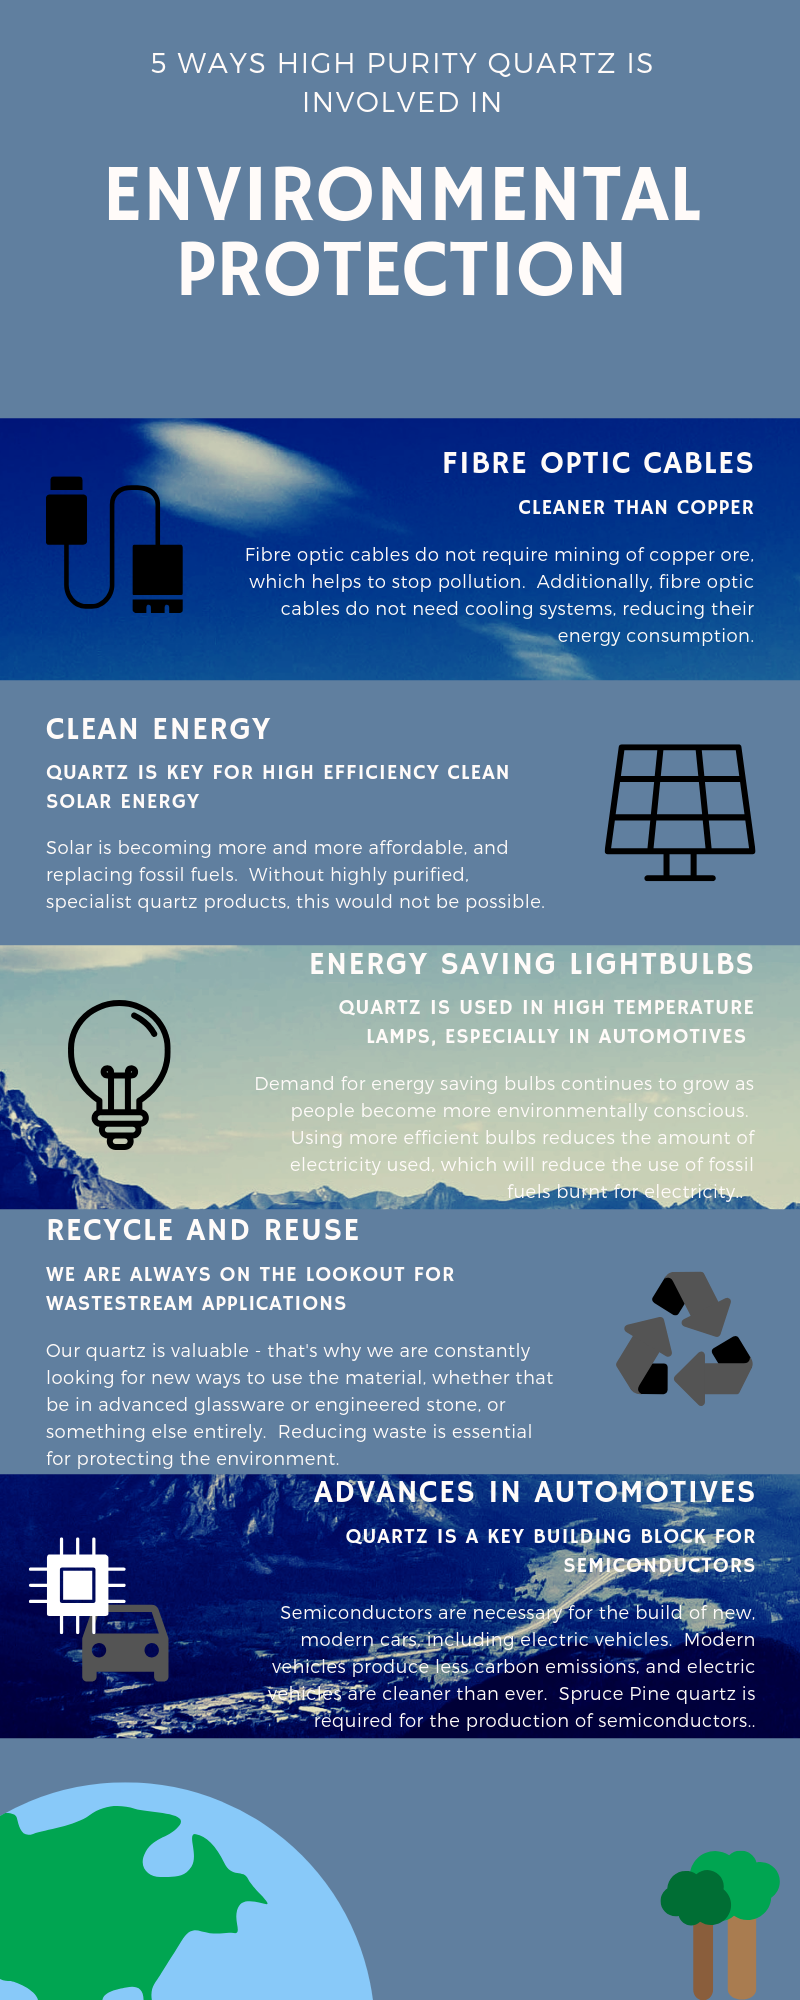 Describes how quartz is used to improve the environment